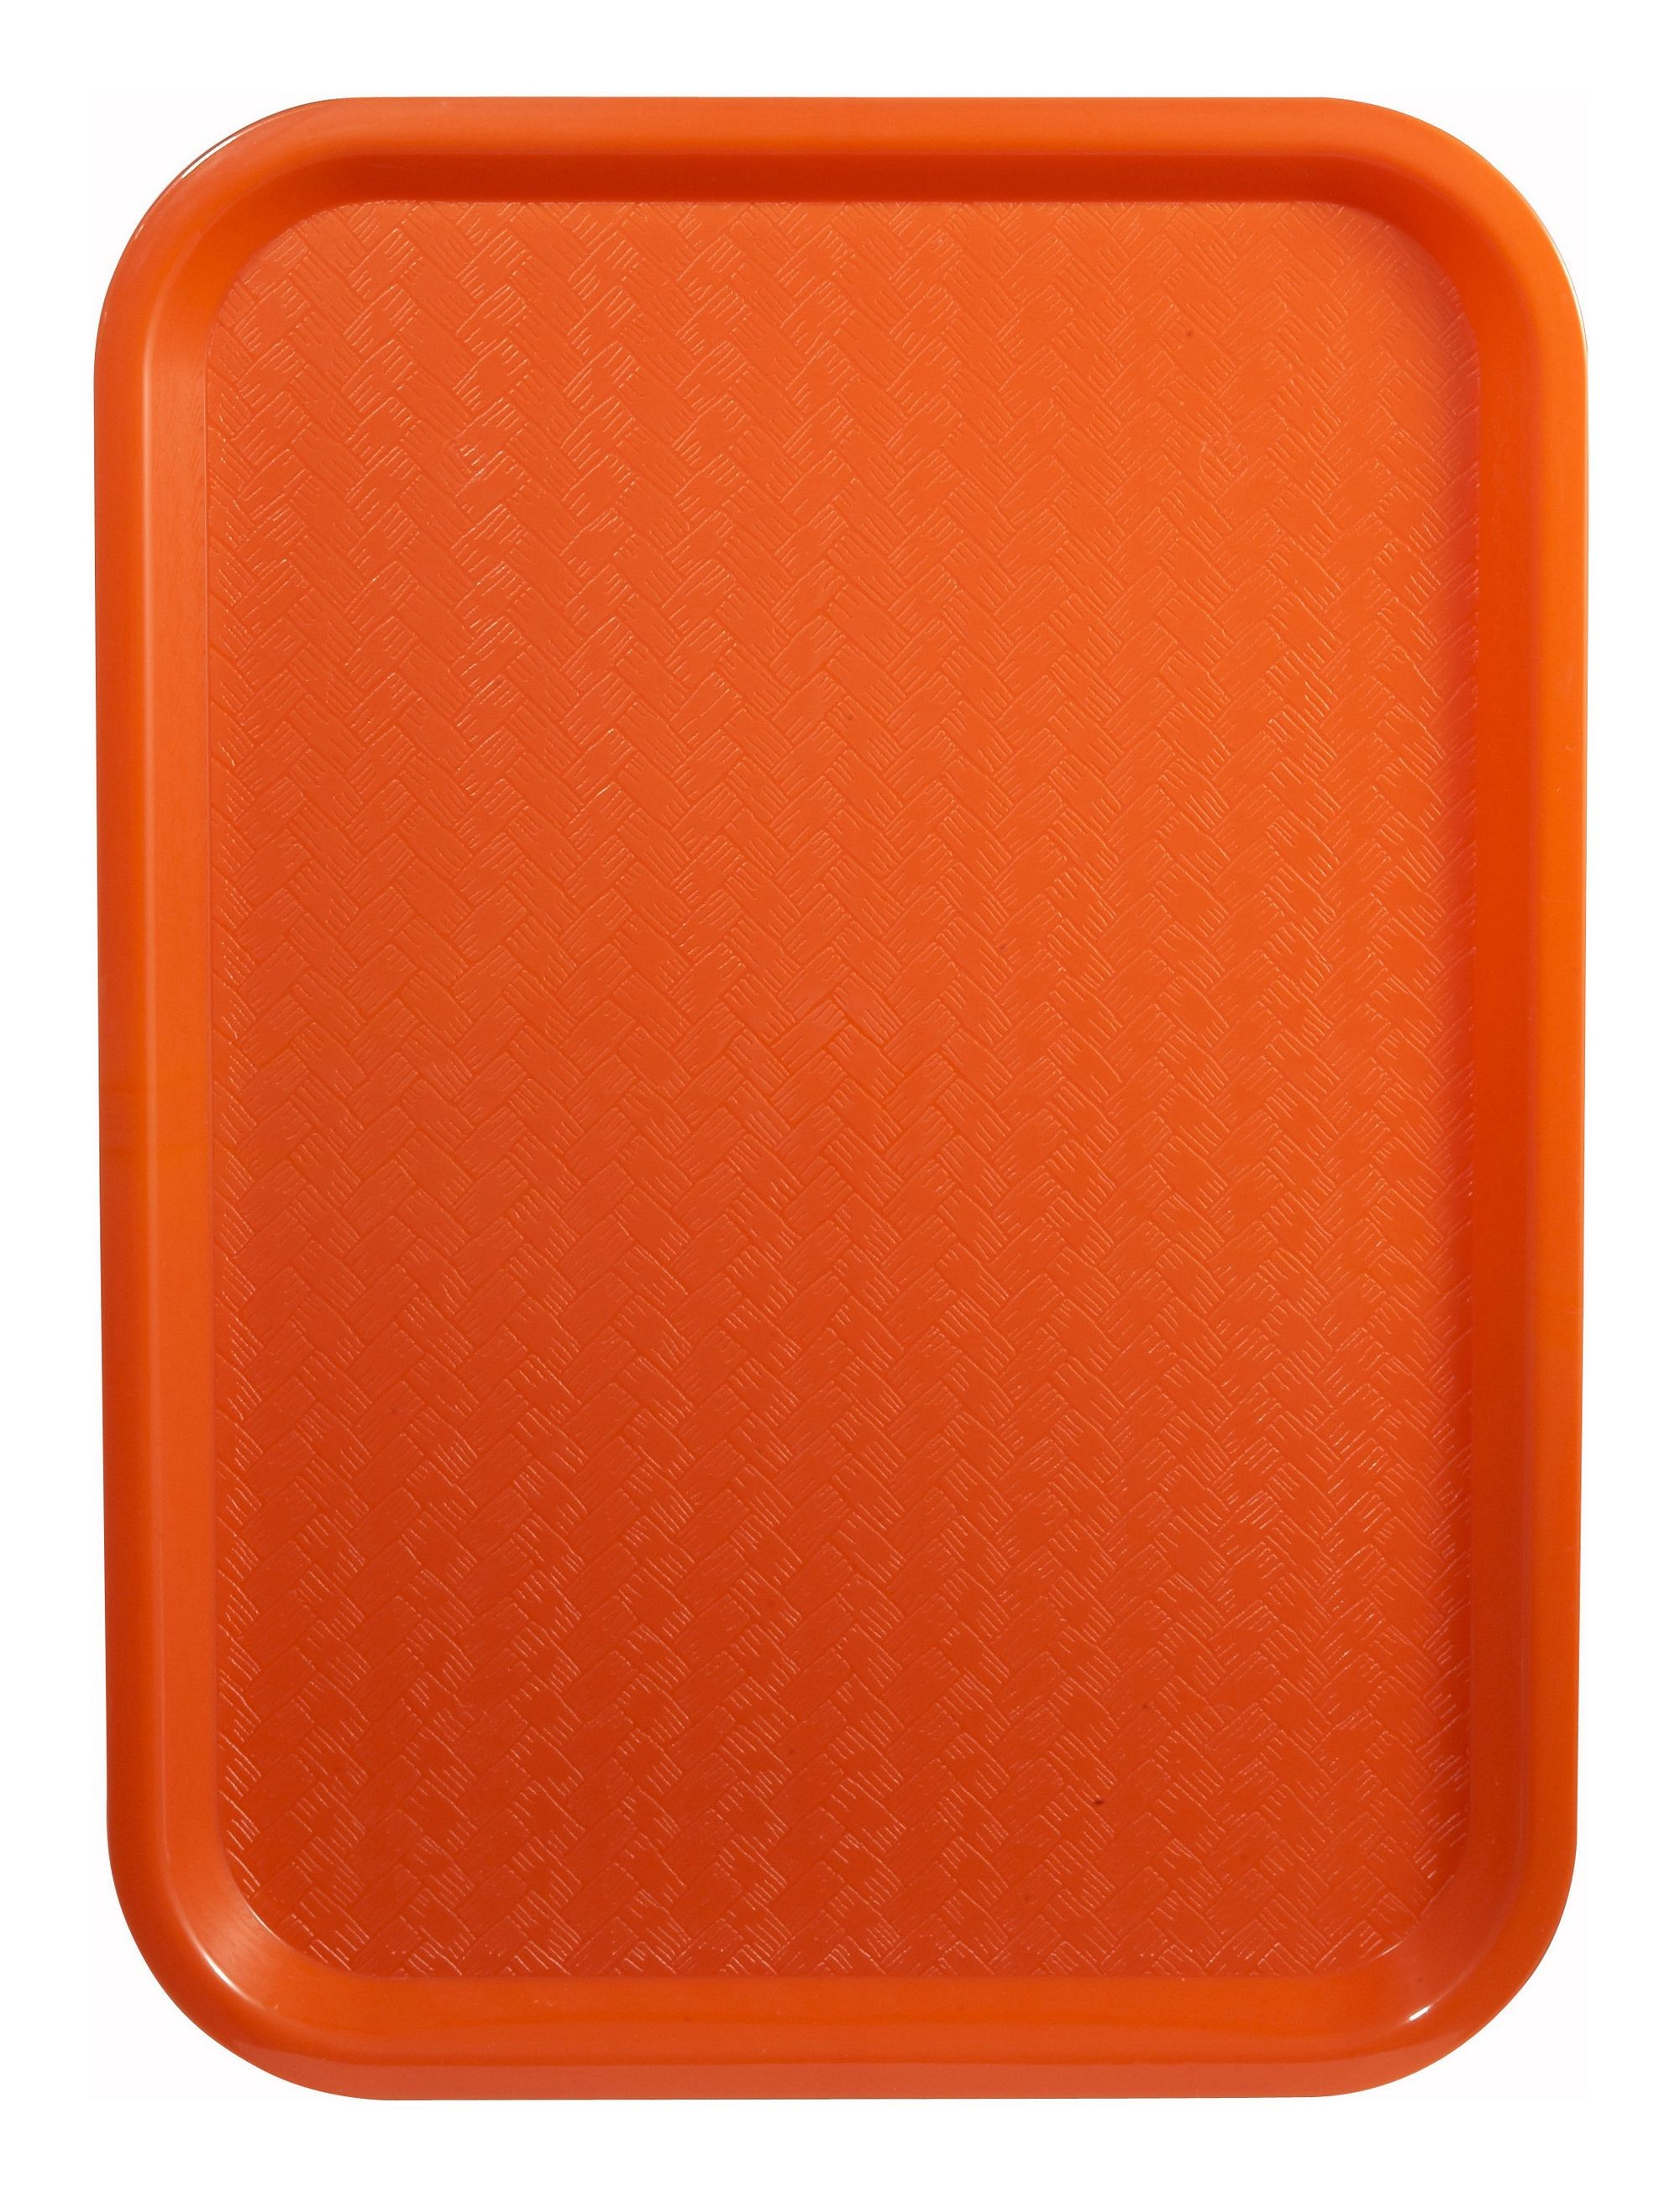 "Winco fft-1418o Orange Plastic Fast Food Tray 14"" x 18"""